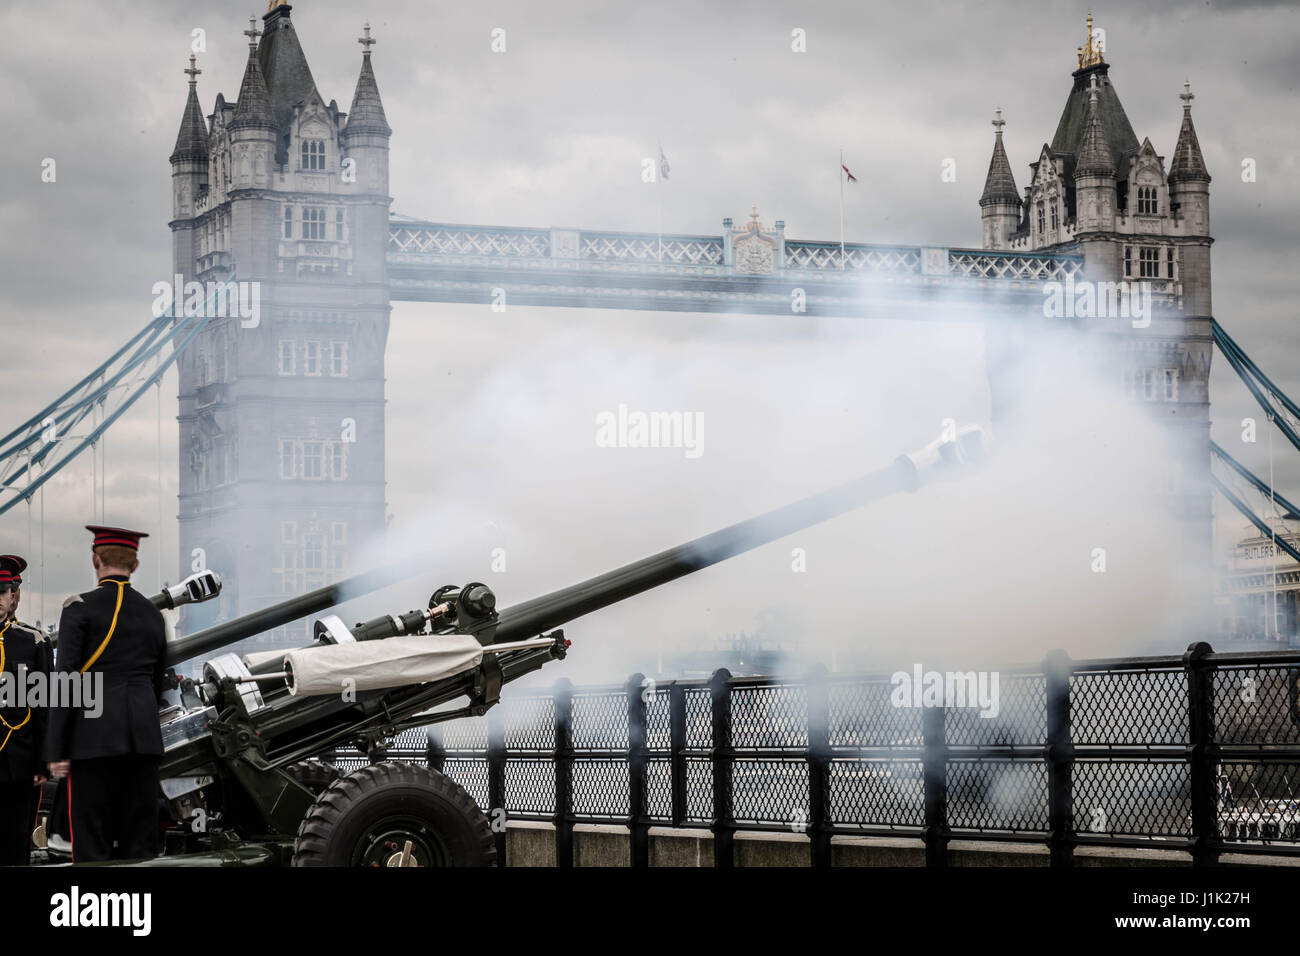 London, UK. 21st April, 2017. 62-gun salute fired by the Honourable Artillery Company at the Tower of London on Stock Photo